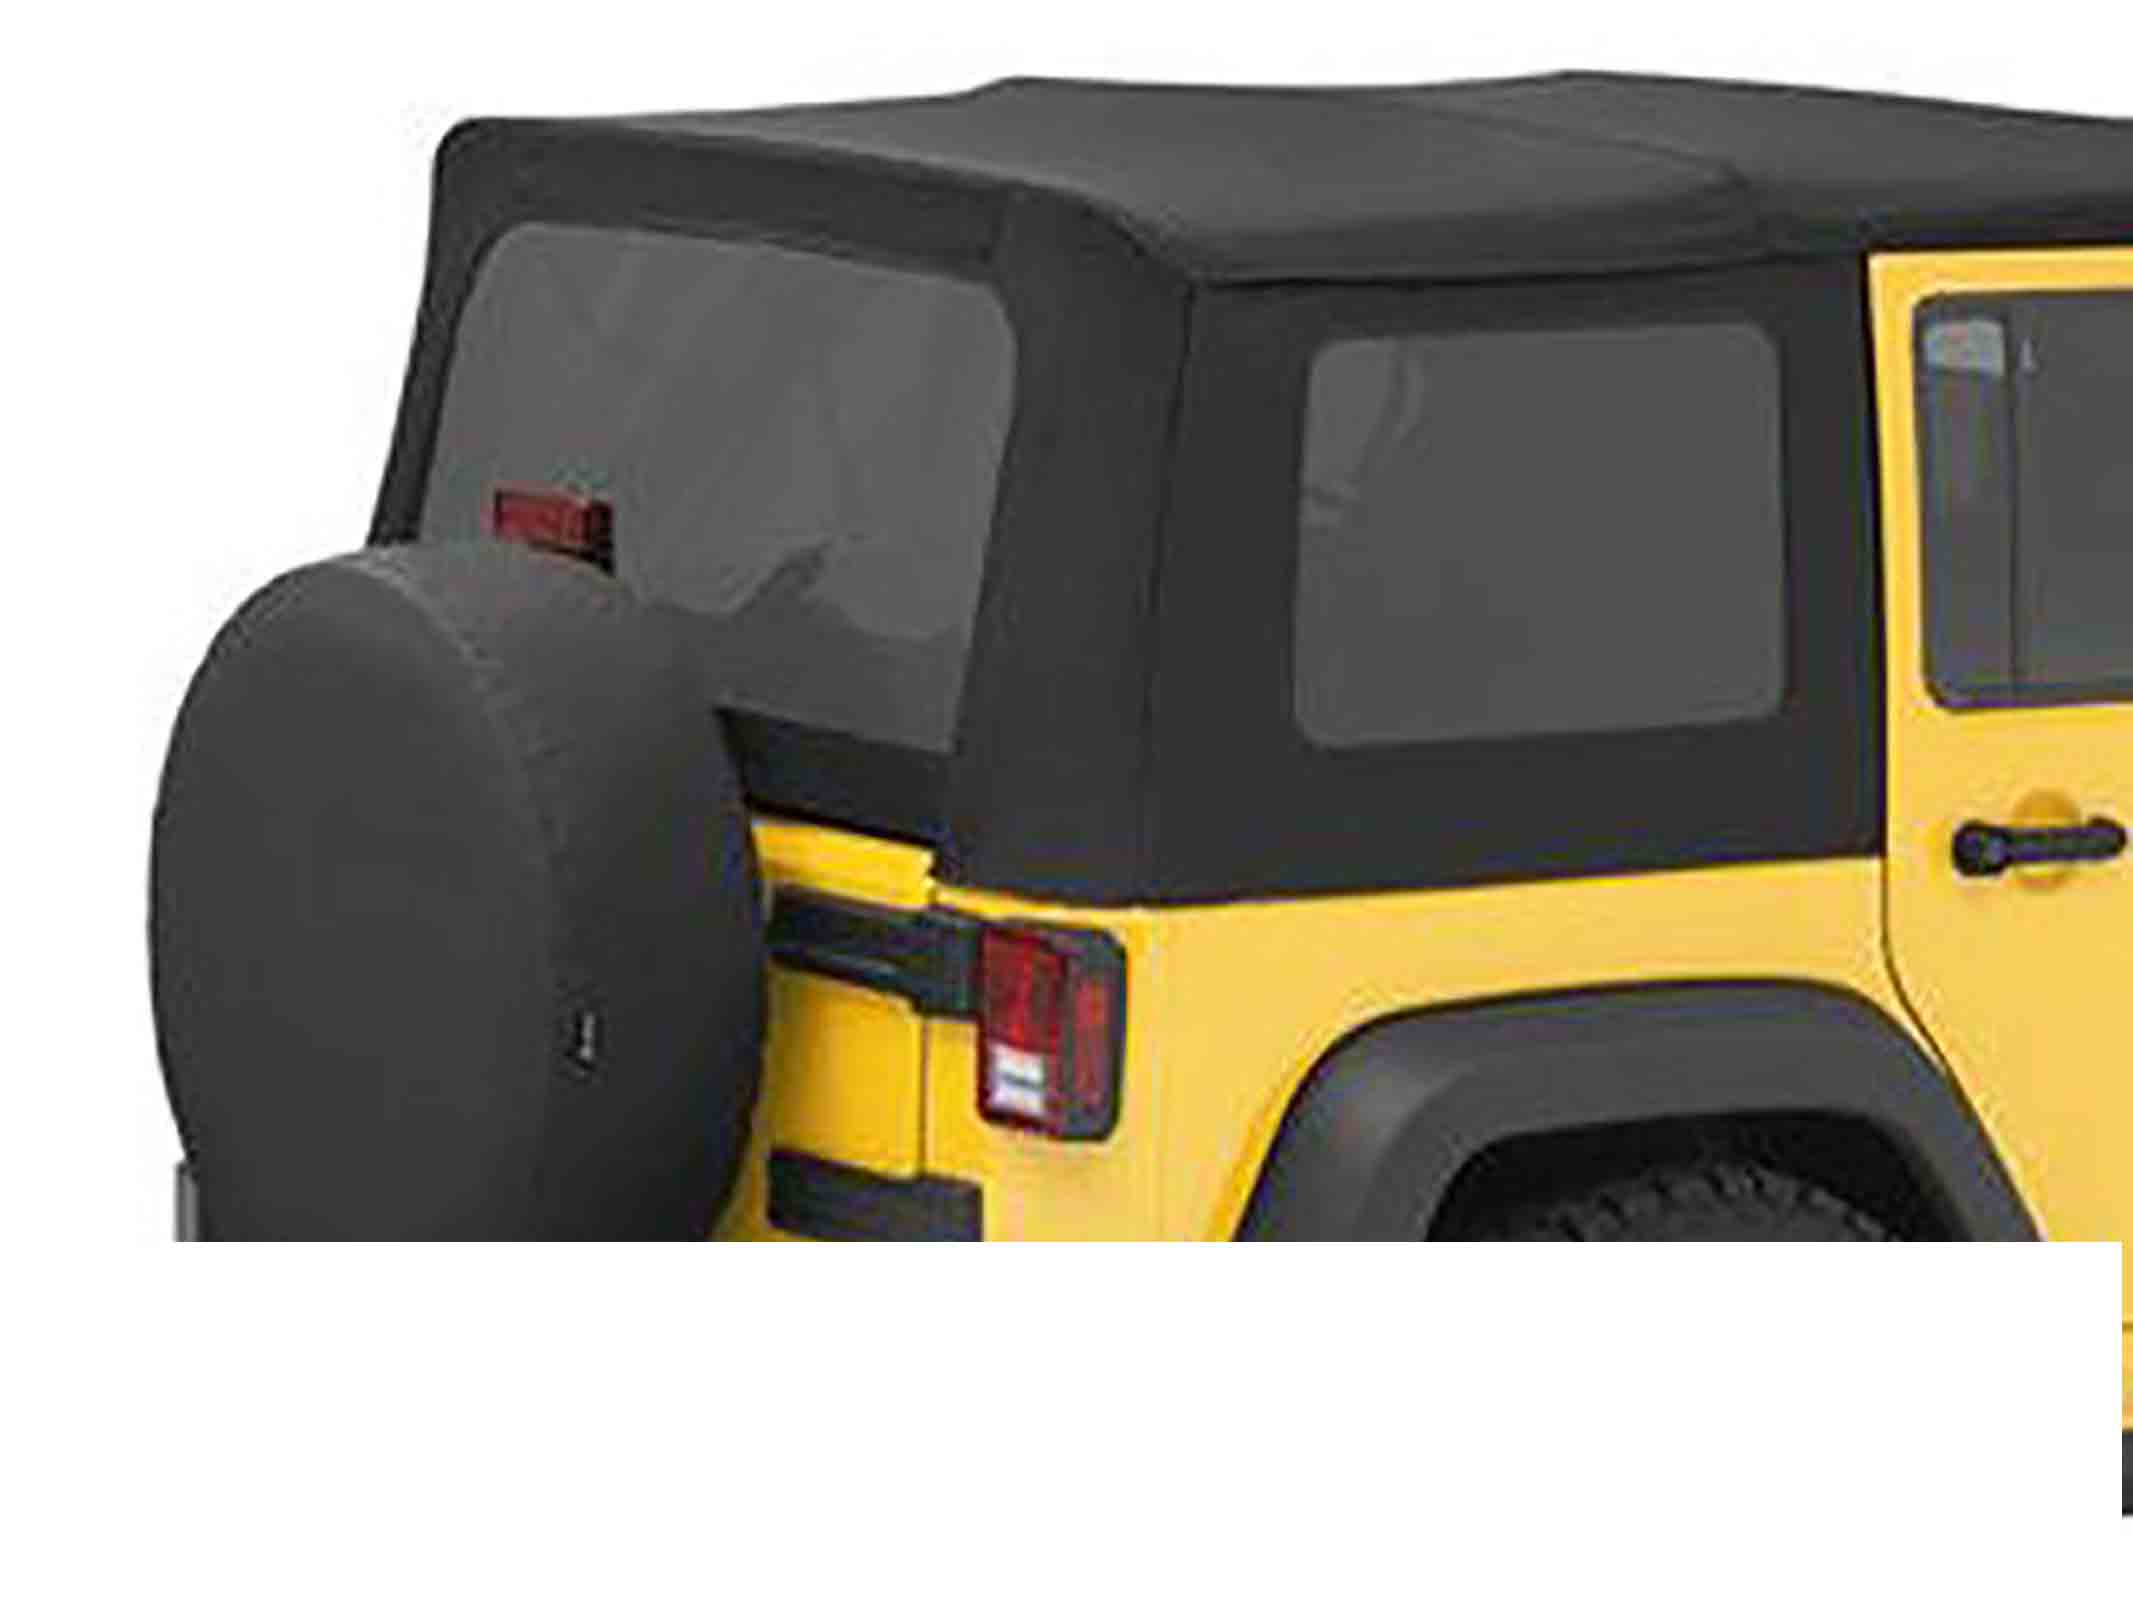 Vetri scuri wrangler jk 11 17 2 porte adatto per softtop soft top capottina originale ricambi jeep